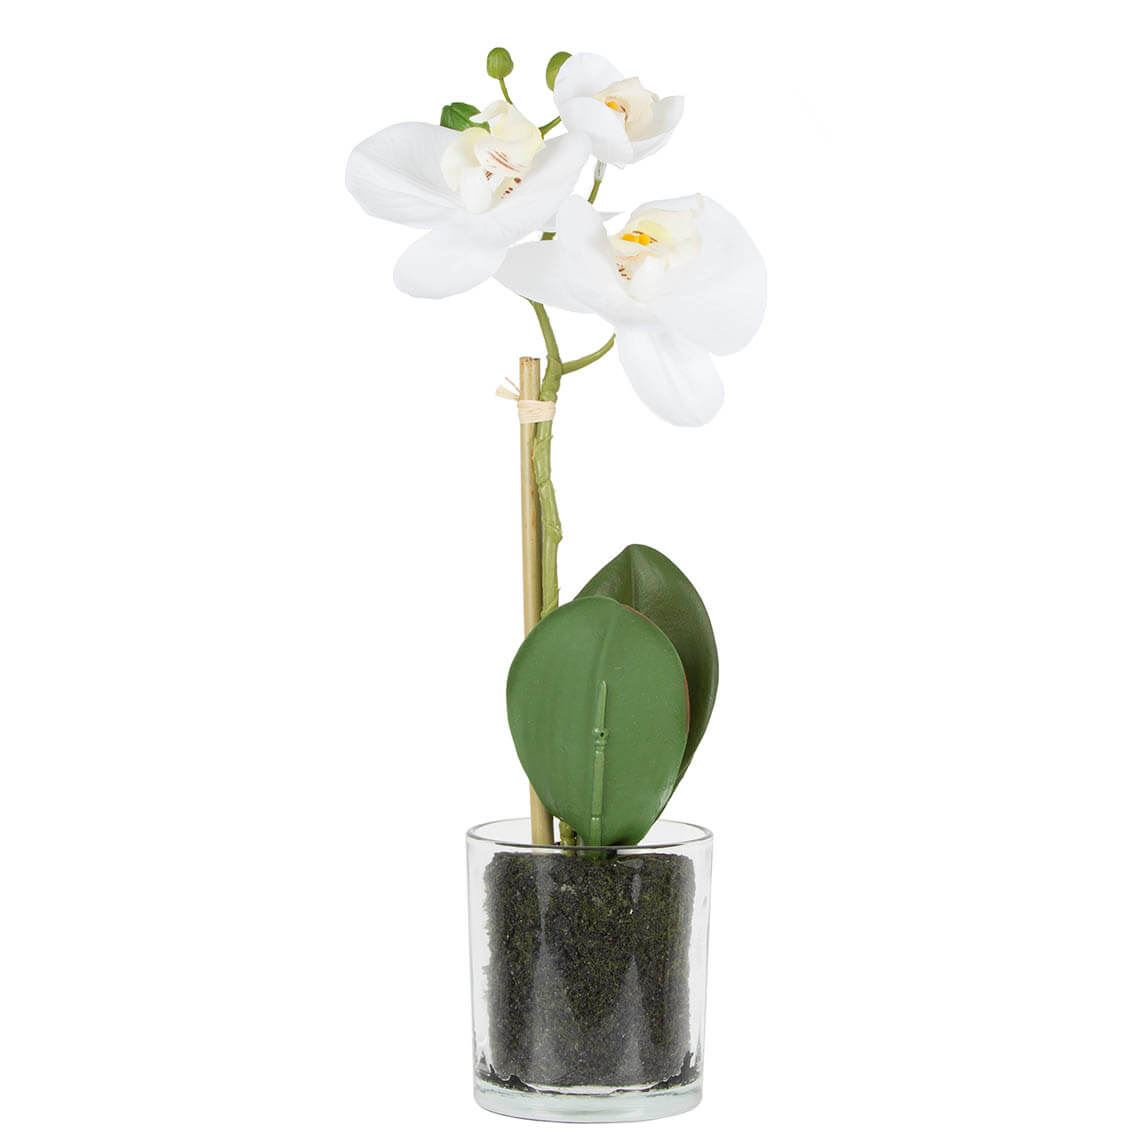 Phalaenopsis Orchid In Glass Vase Size W 13cm x D 20cm x H 33cm in White Plastic/Fabric/Wire Freedom by Freedom, a Plants for sale on Style Sourcebook